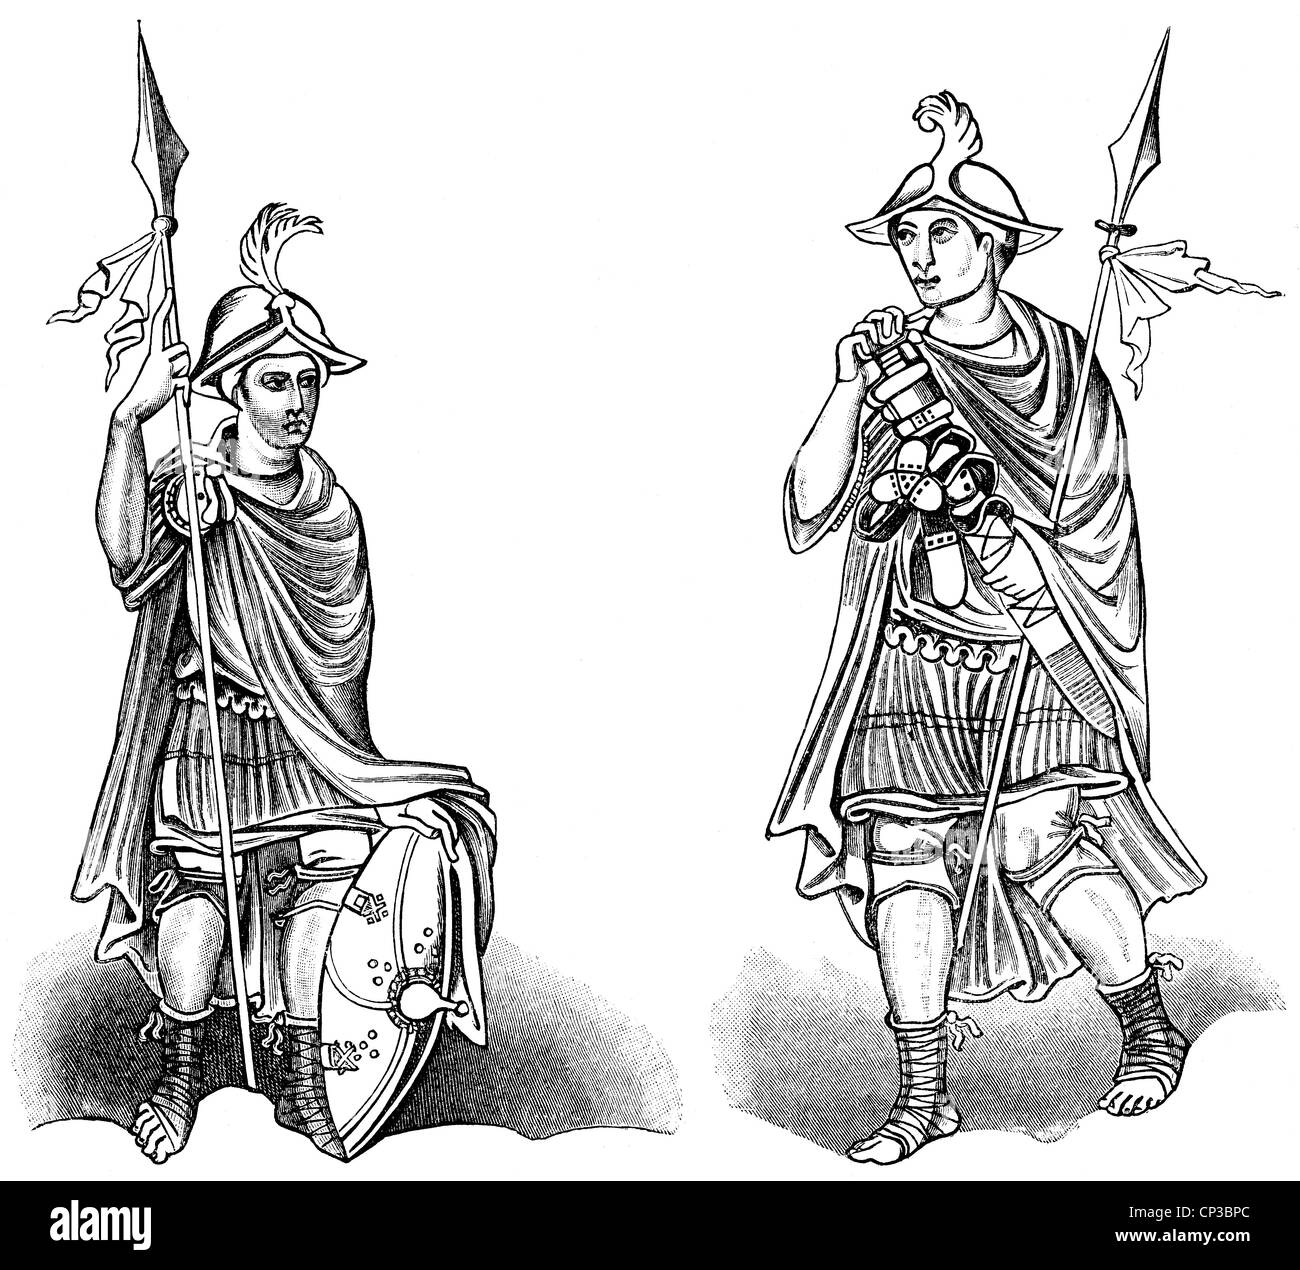 Historical print from the 19th century, Frankish warriors from the 9th century, - Stock Image